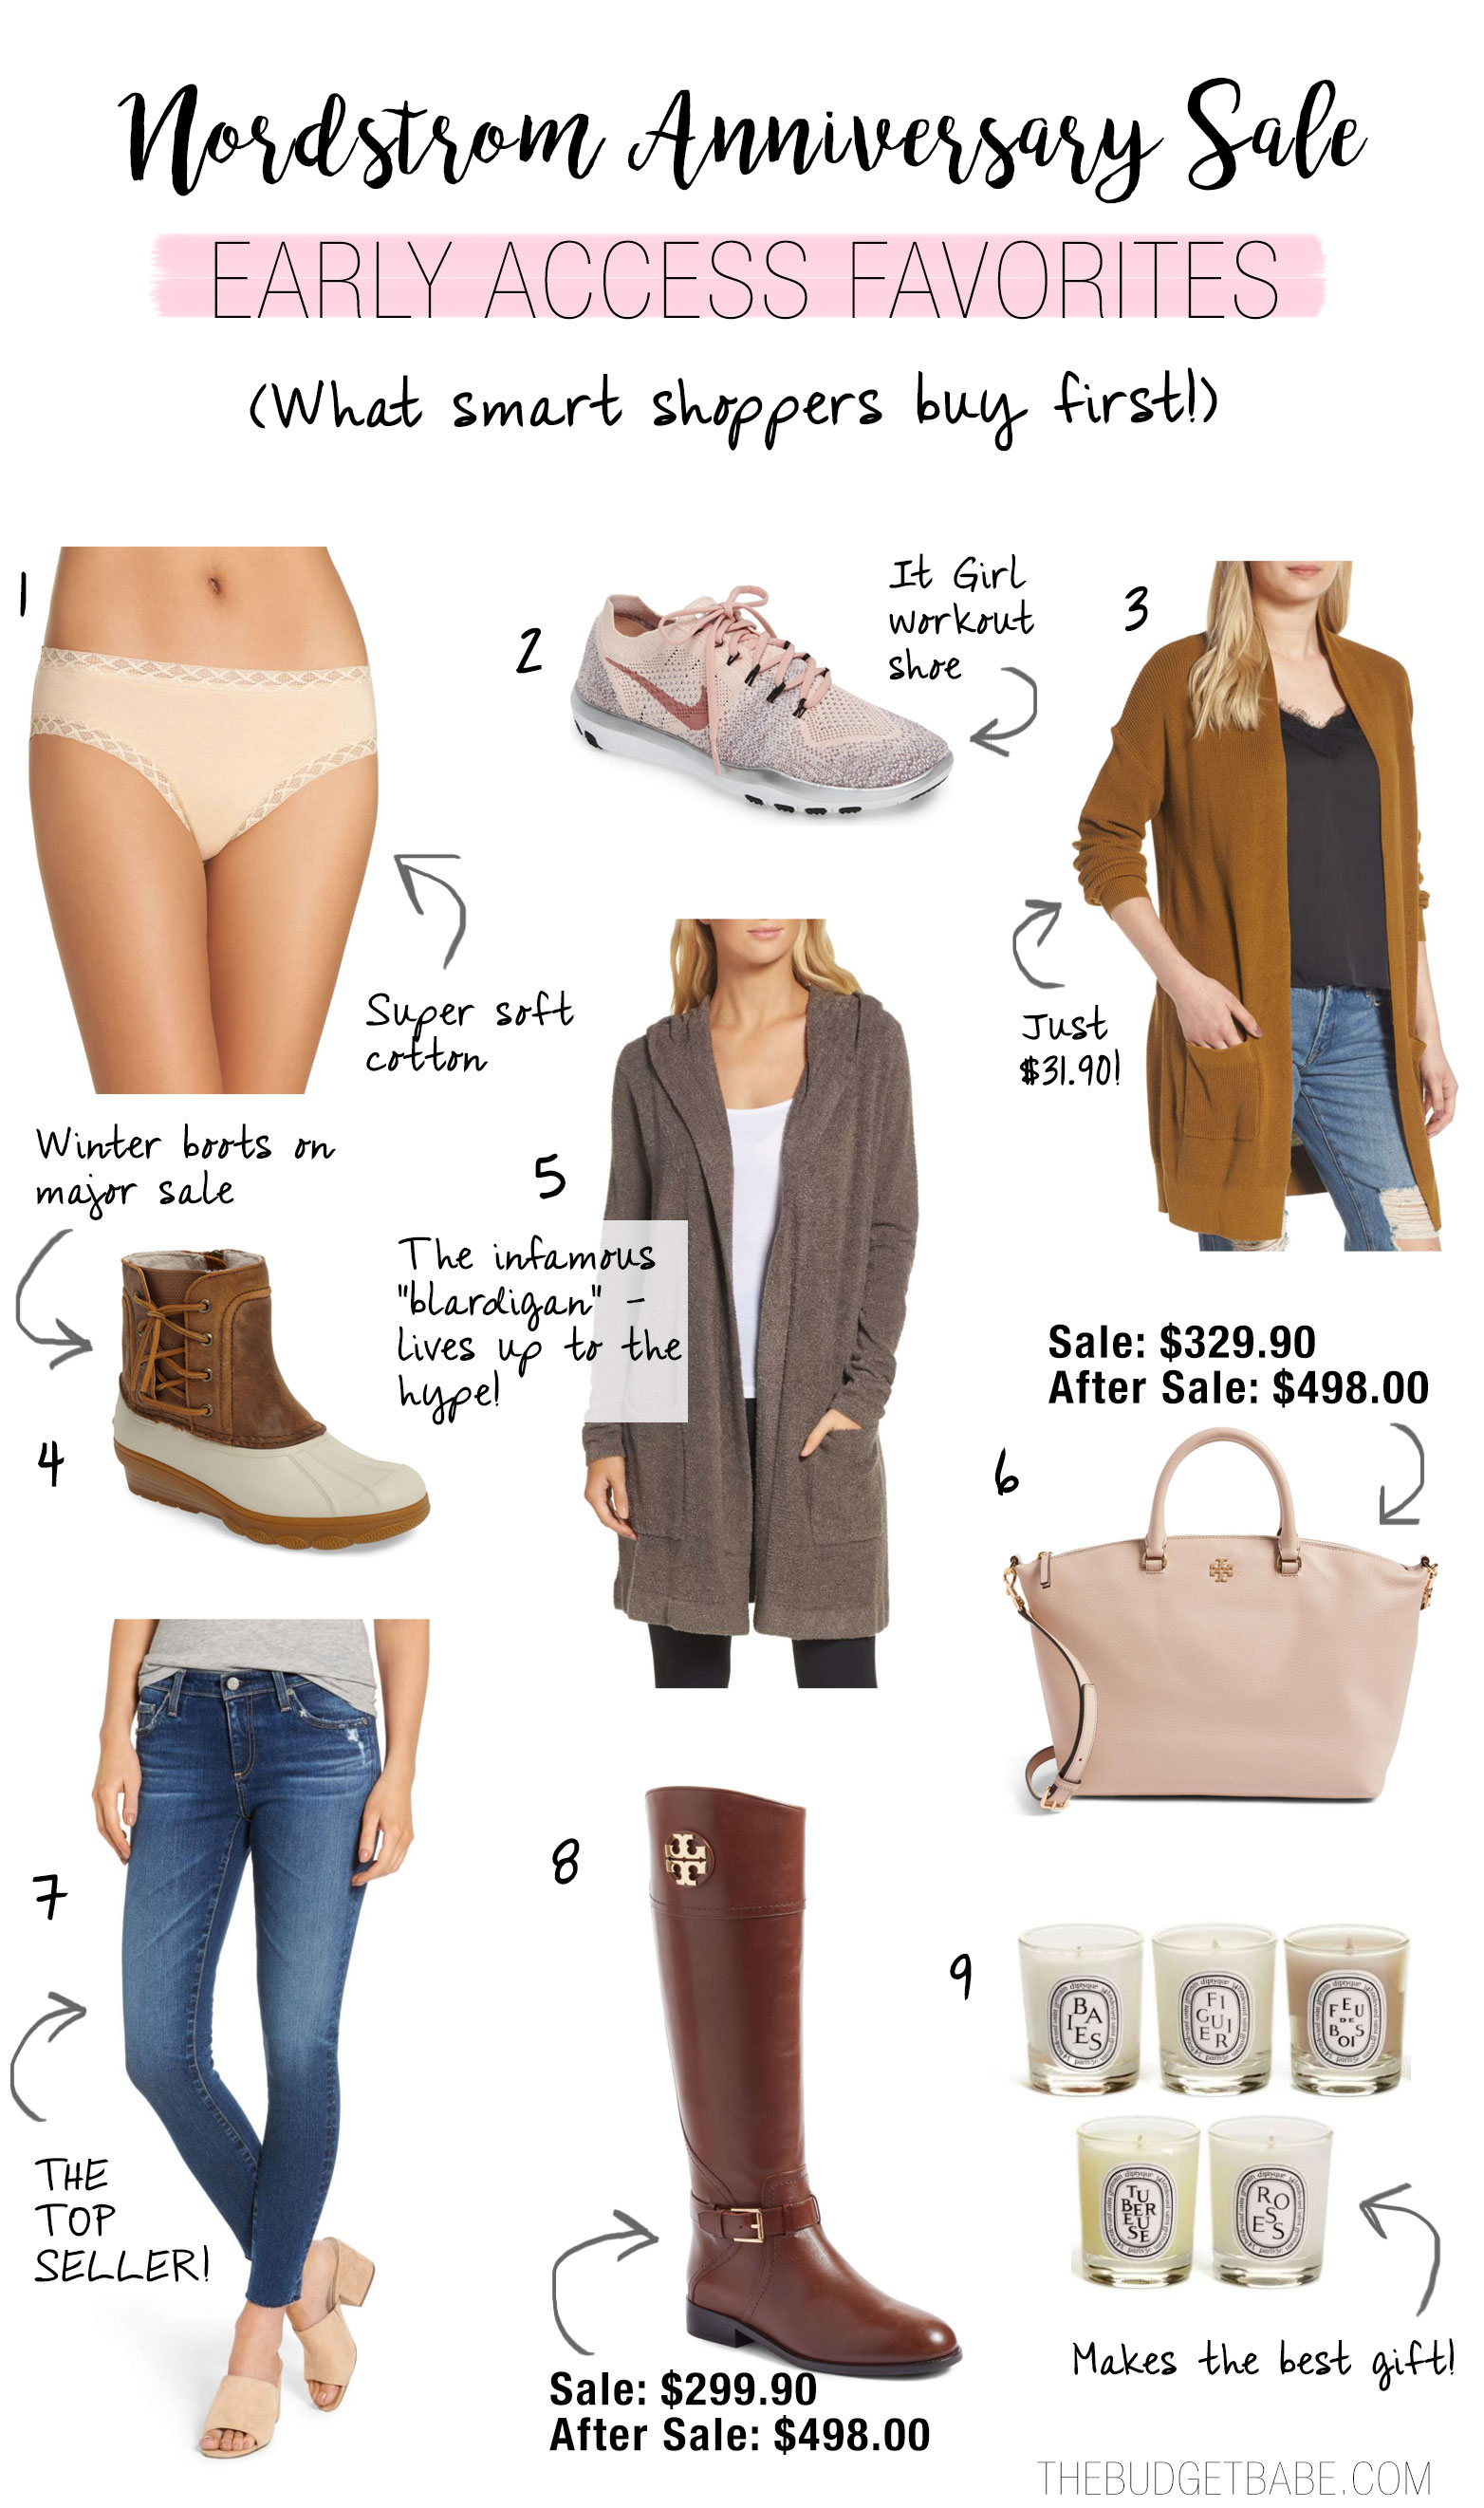 best deals nordstrom anniversary sale